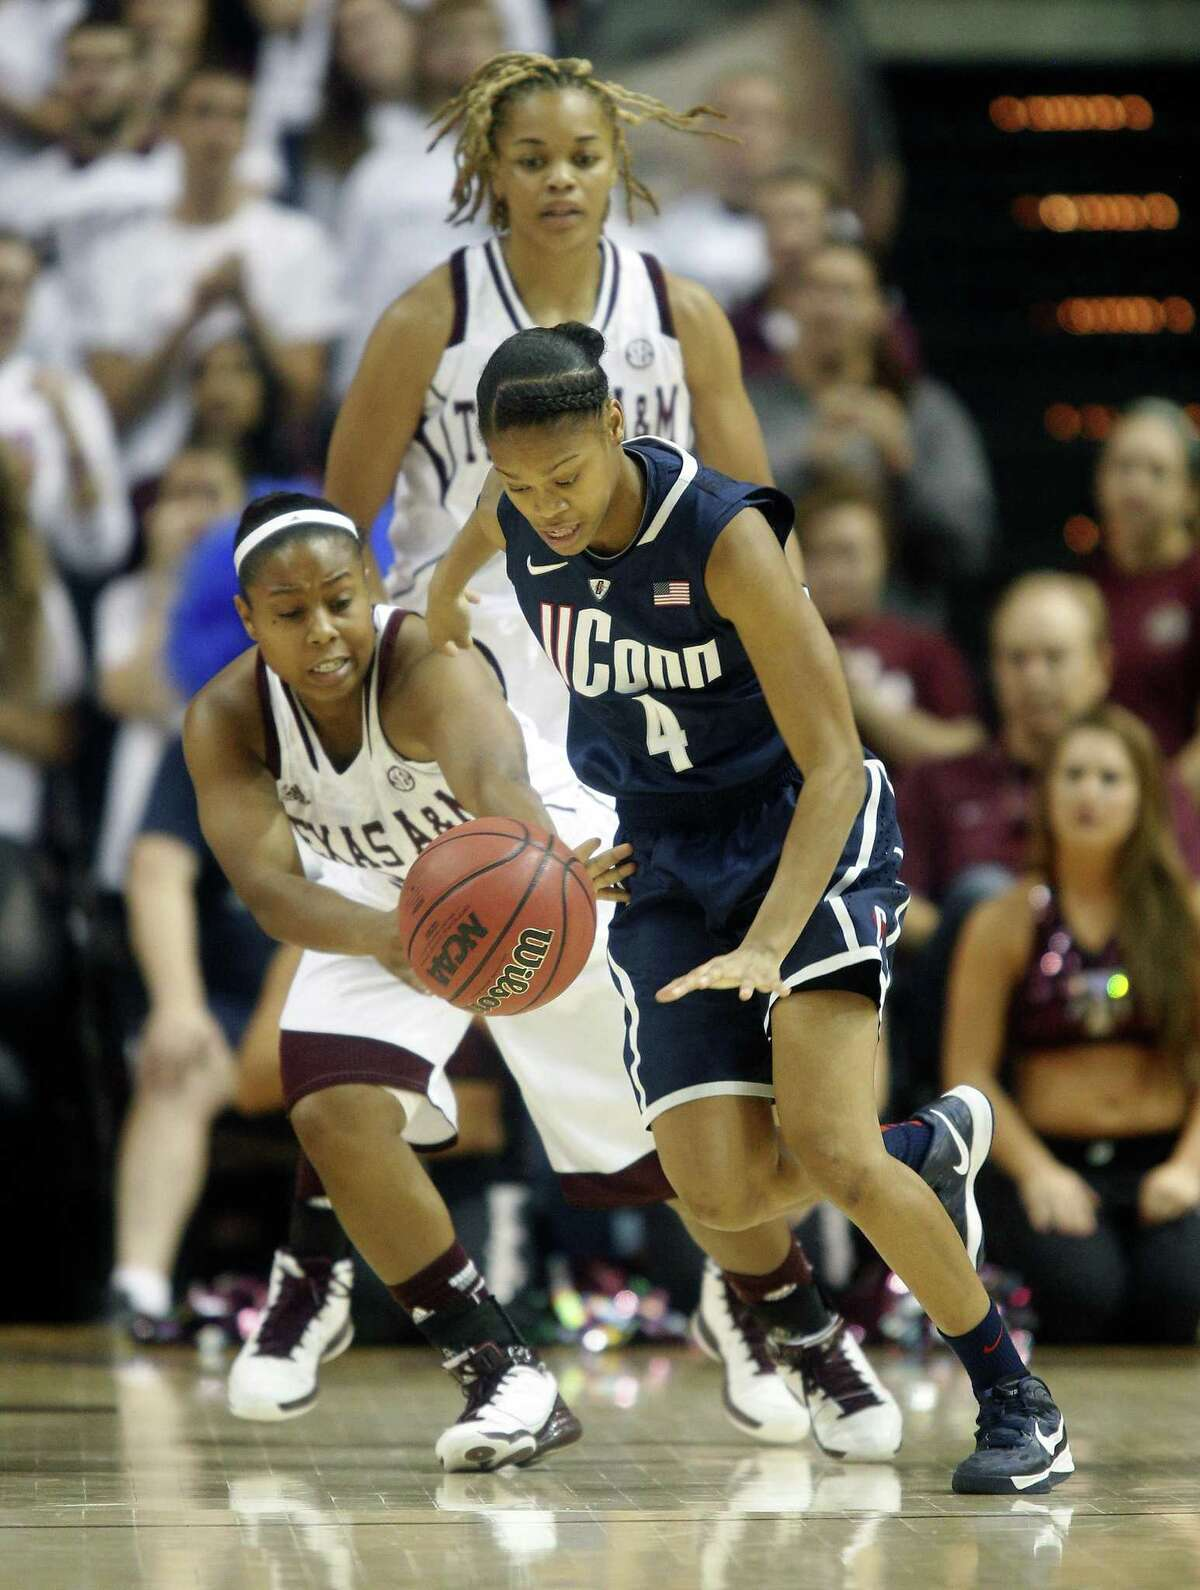 Texas A&M's Adrienne Pratcher attempts to steal the ball from Connecticut 's Moriah Jefferson during the second half of the Nov. 18, 2012 game in College Station, Texas. Connecticut won 81-50. Photo by The Associated Press